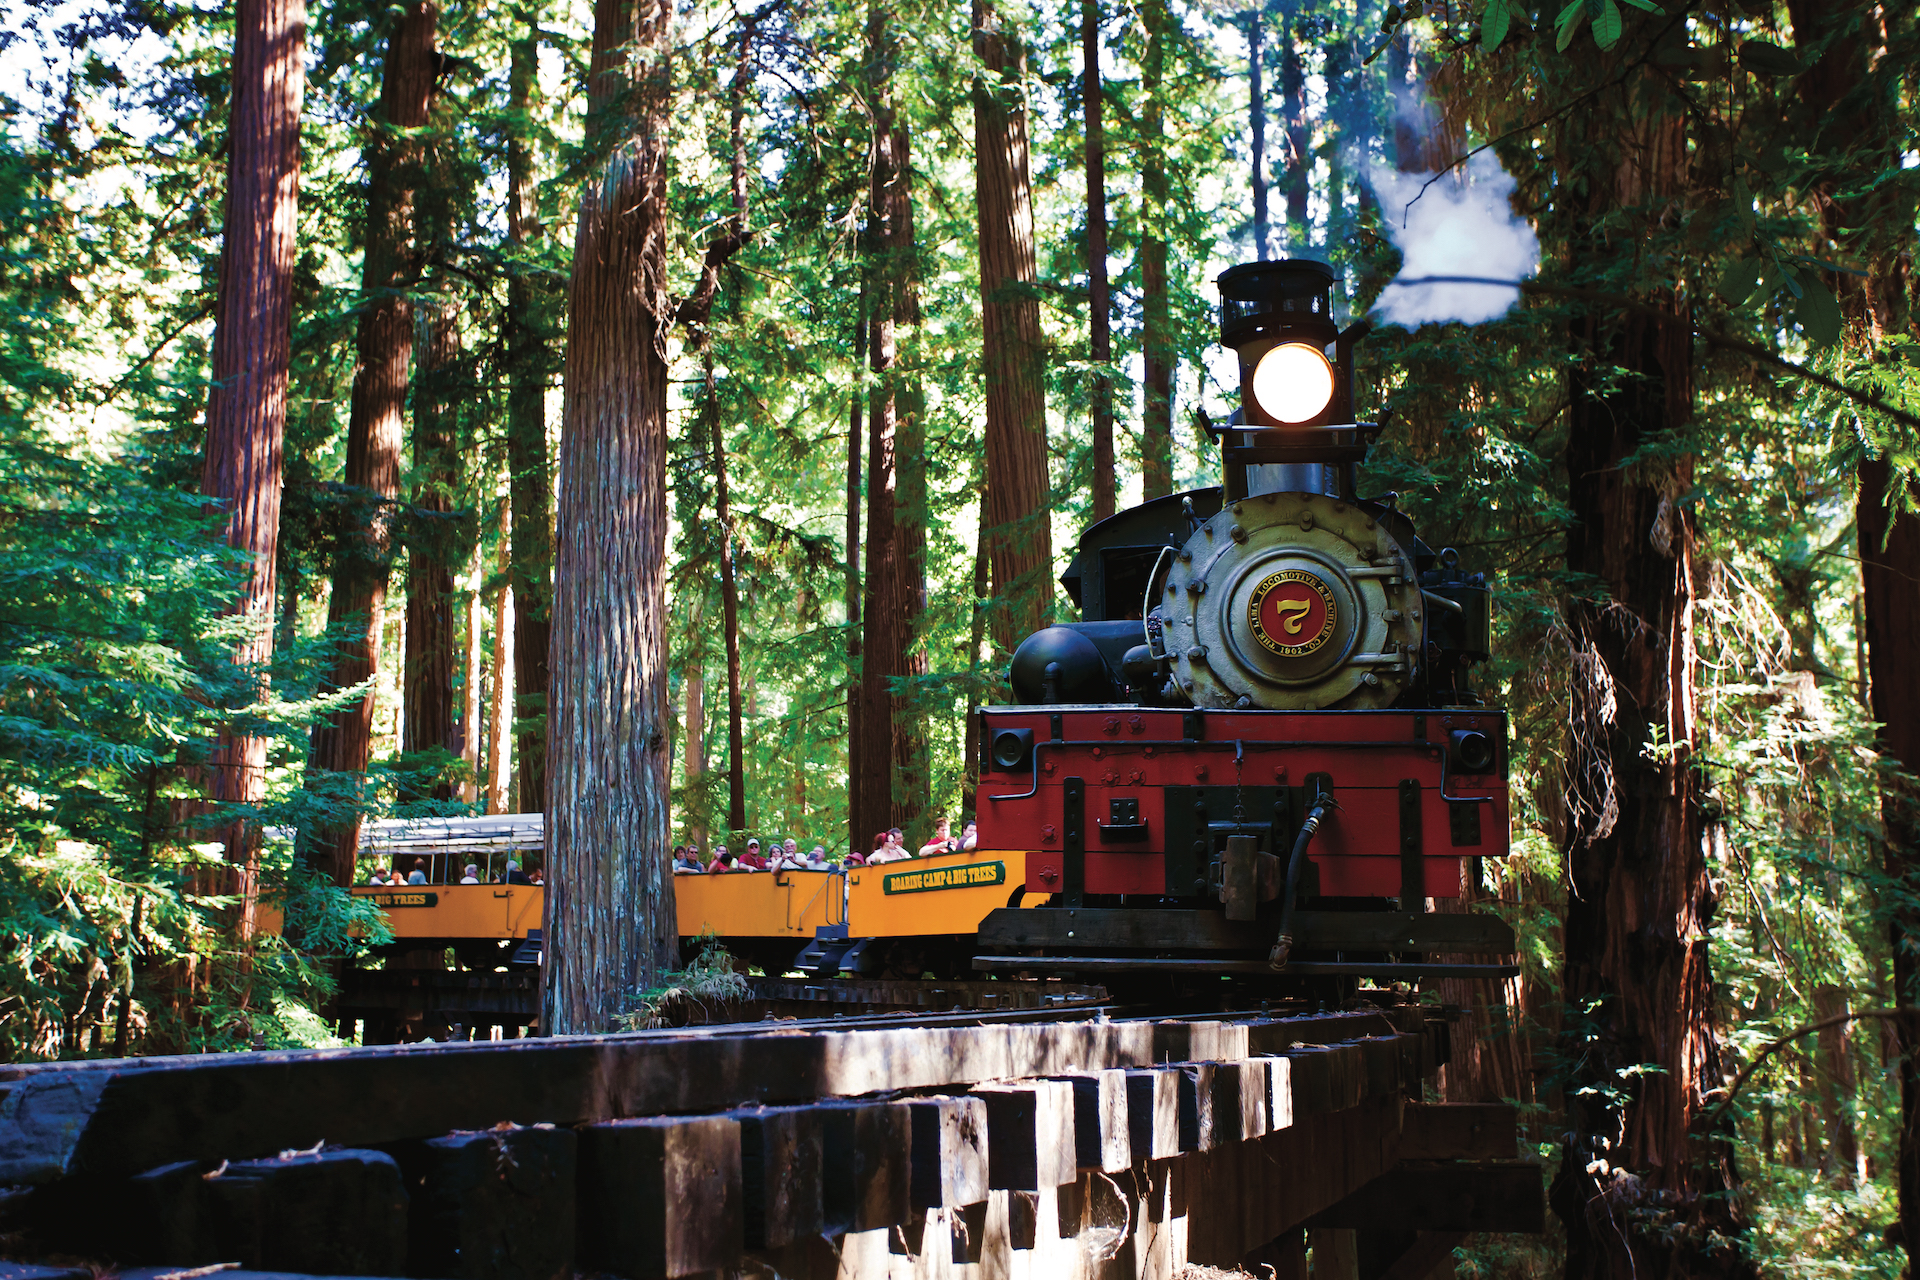 Steam engine cutting through redwood forest